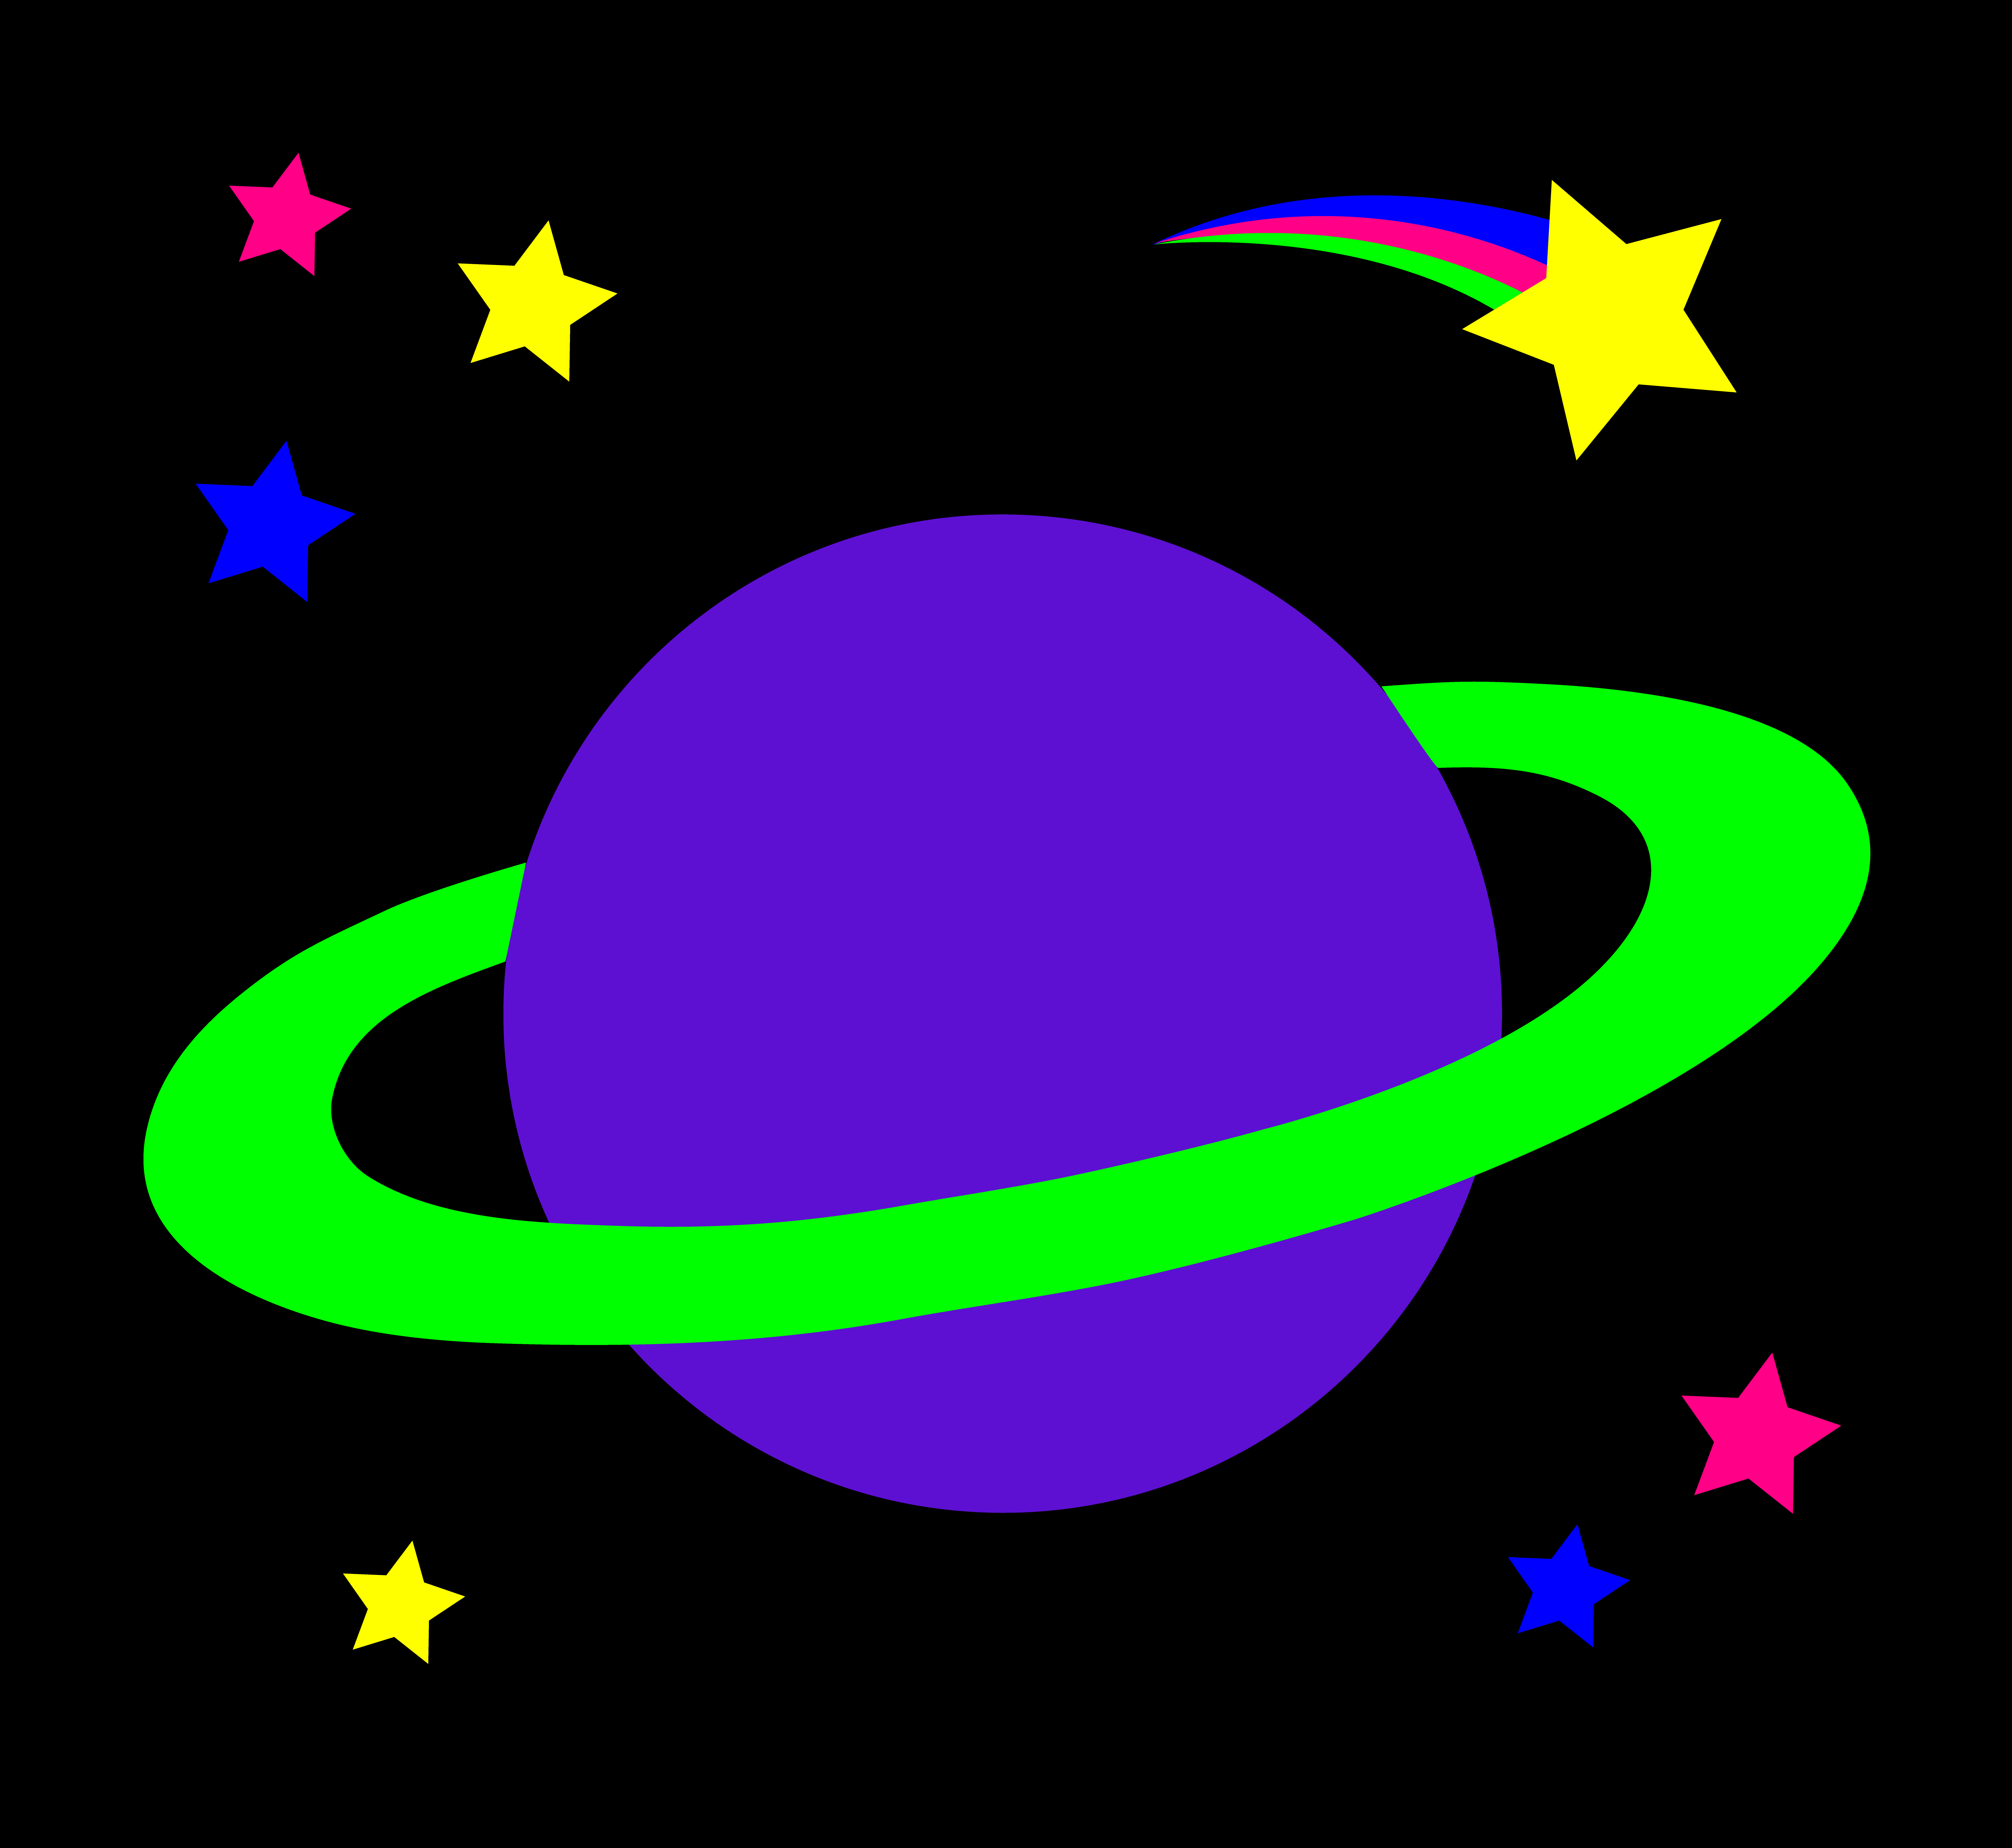 Space Clipart - Cliparts.co